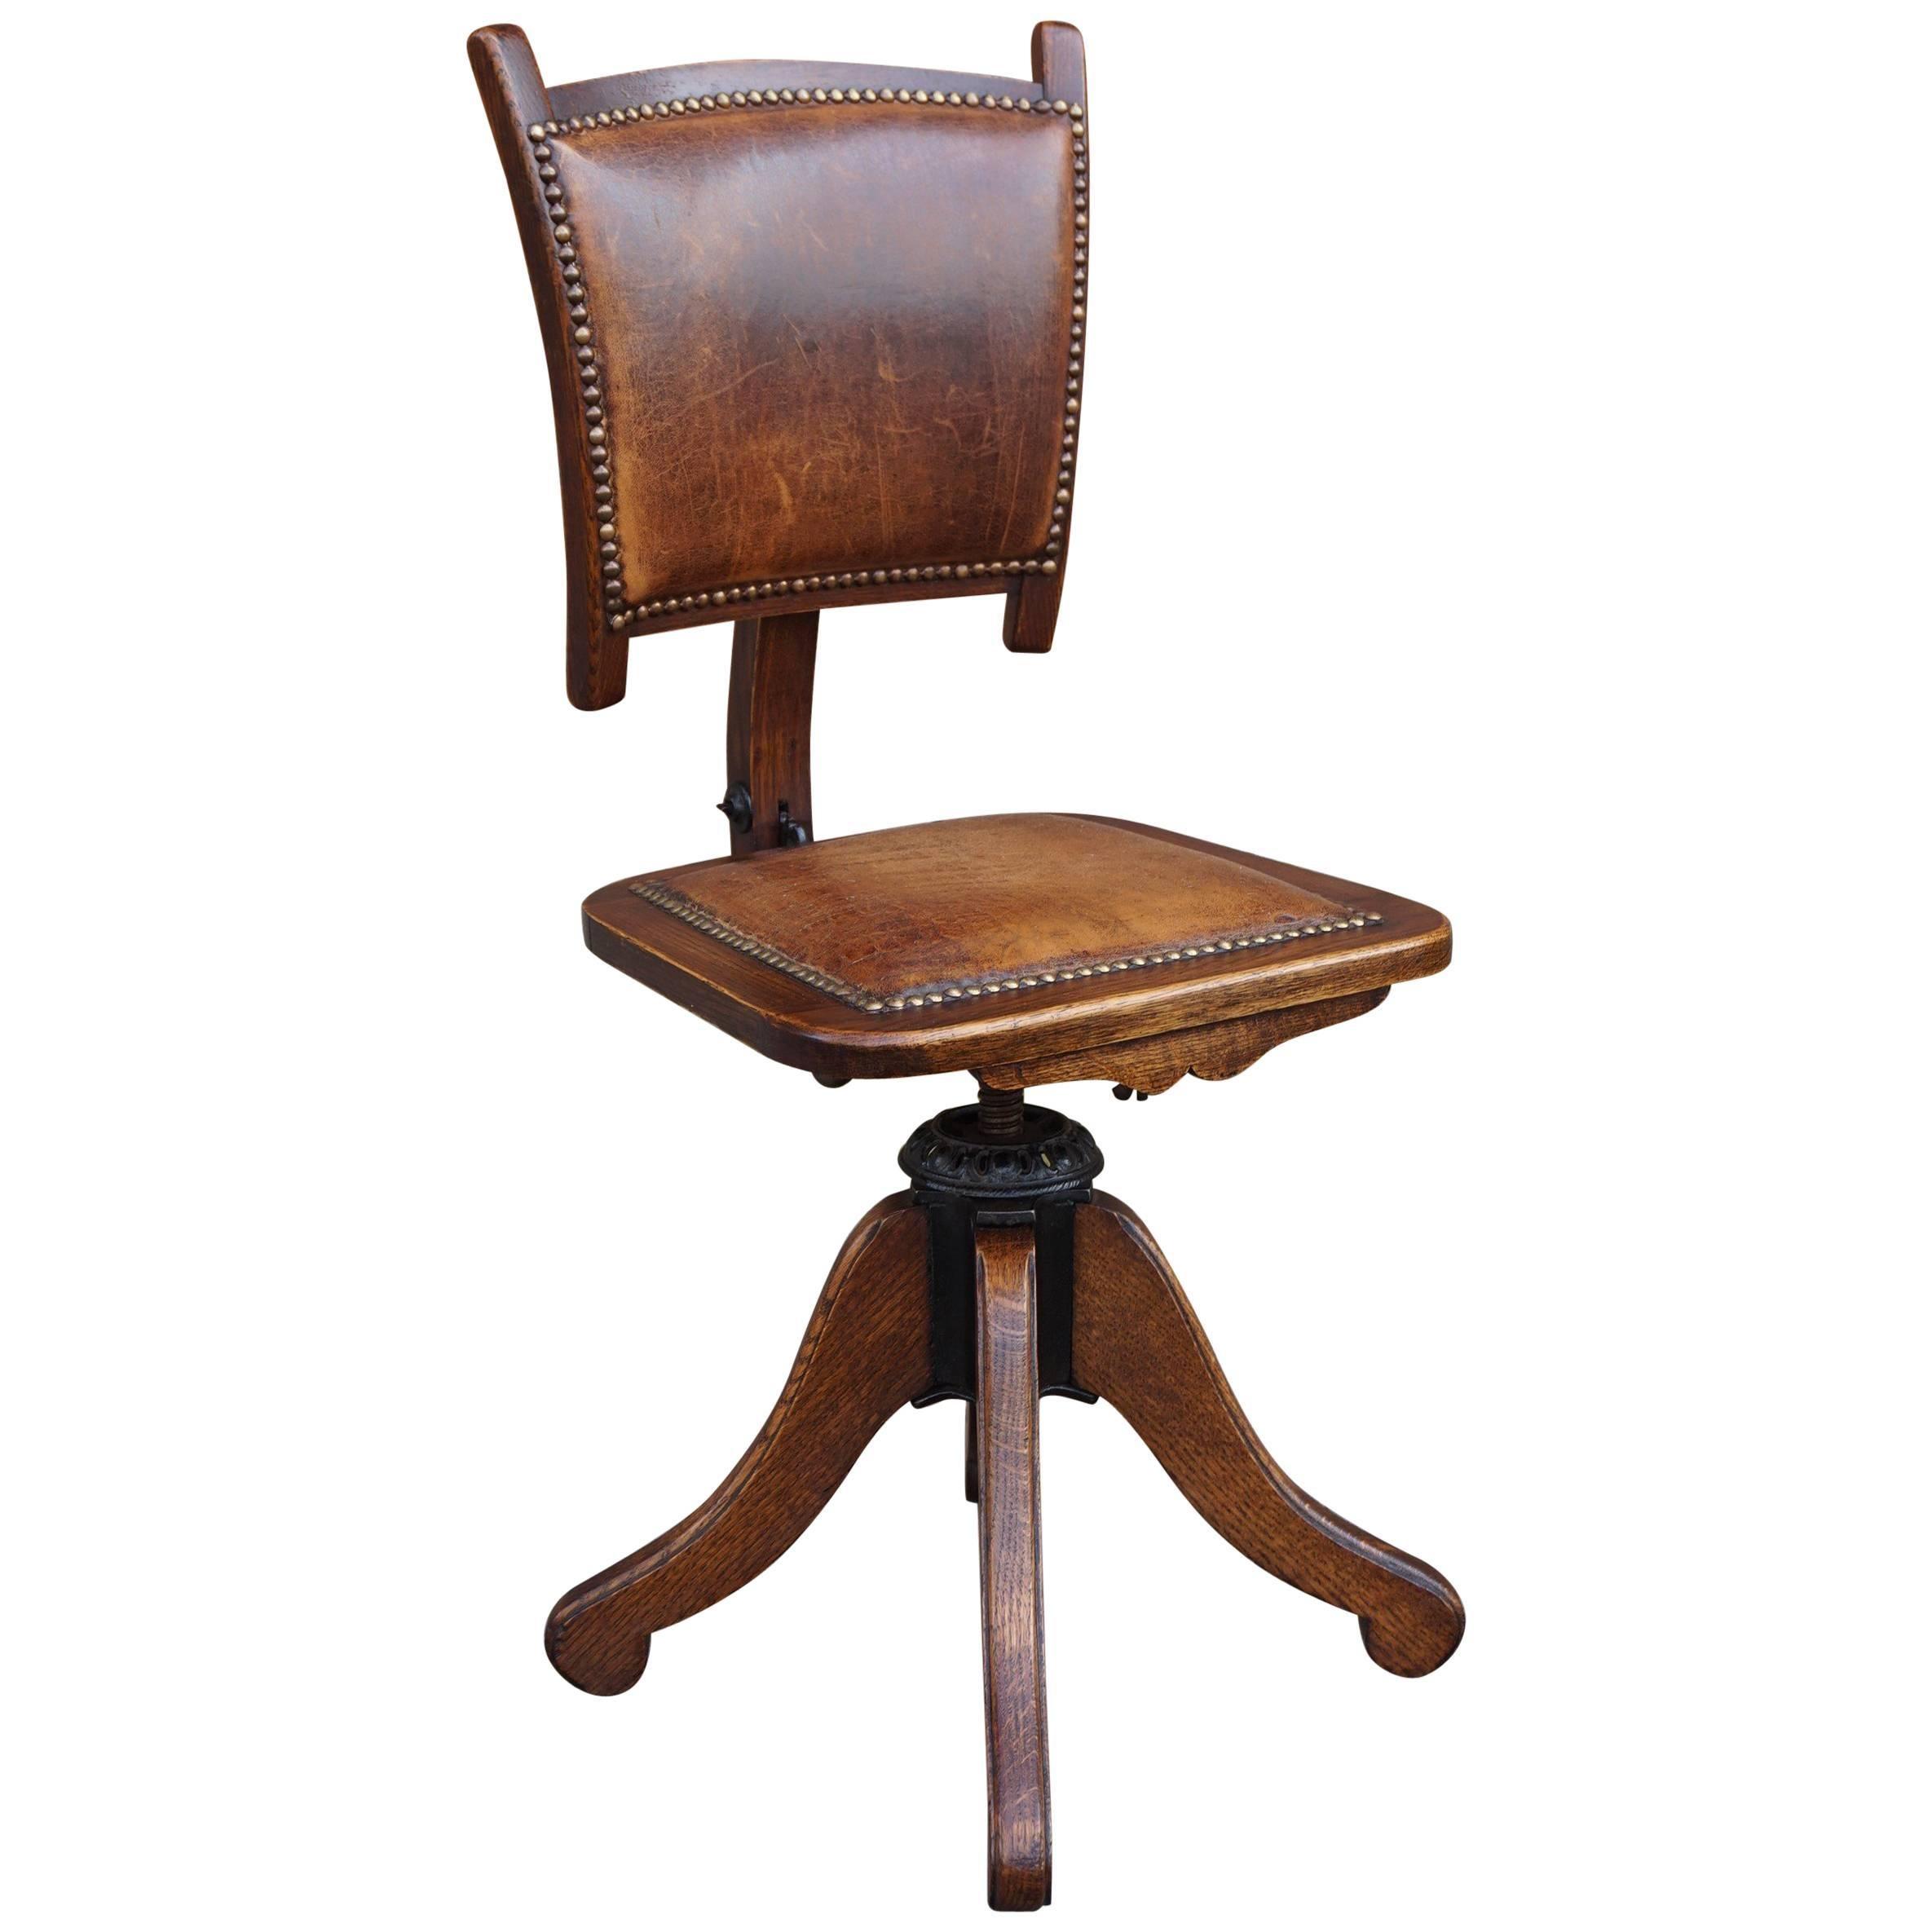 Rare American Arts U0026 Crafts Desk Or Drafting Chair By The Davis Chair  Company For Sale